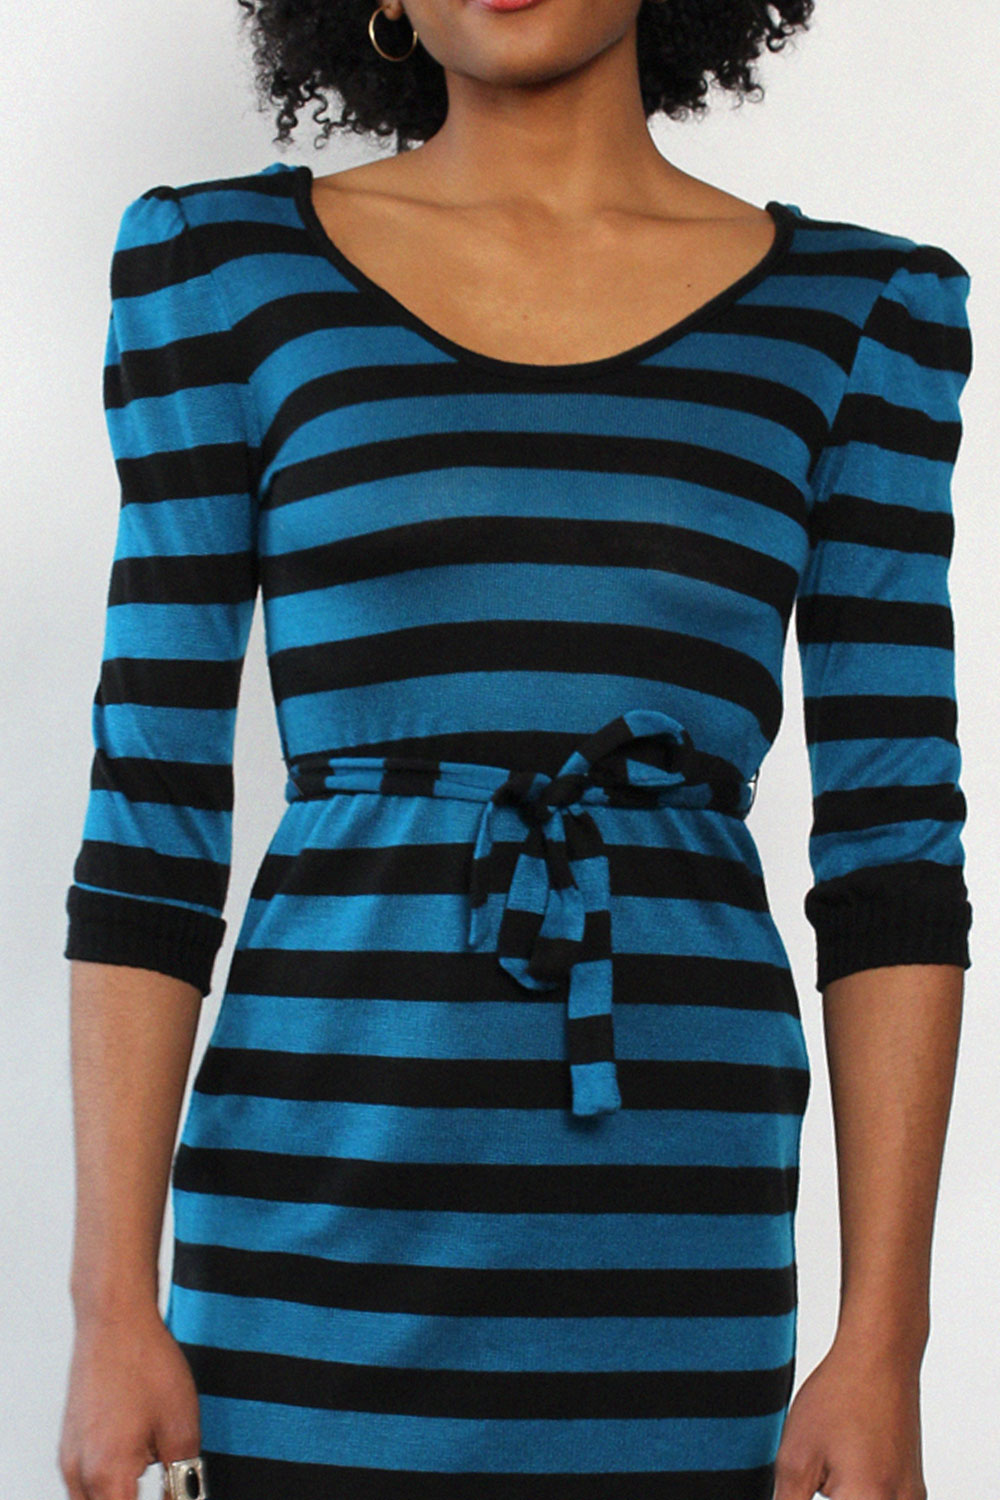 Peacock Stripe Knit Dress XS-M